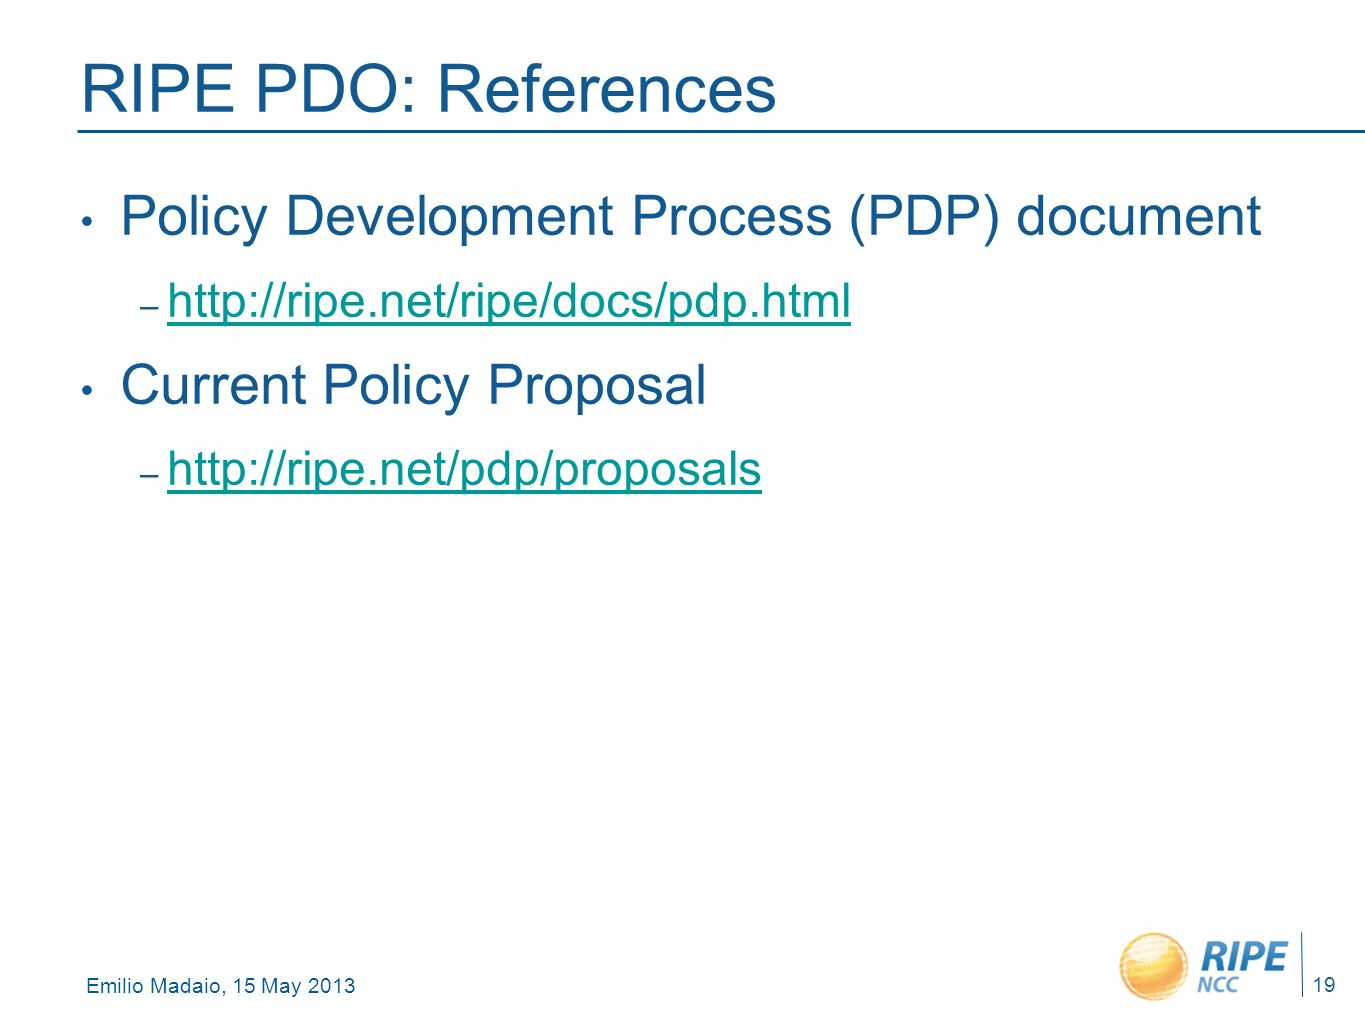 Emilio Madaio, 15 May 2013 19 RIPE PDO: References Policy Development Process (PDP) document – http://ripe.net/ripe/docs/pdp.html http://ripe.net/ripe/docs/pdp.html Current Policy Proposal – http://ripe.net/pdp/proposals http://ripe.net/pdp/proposals